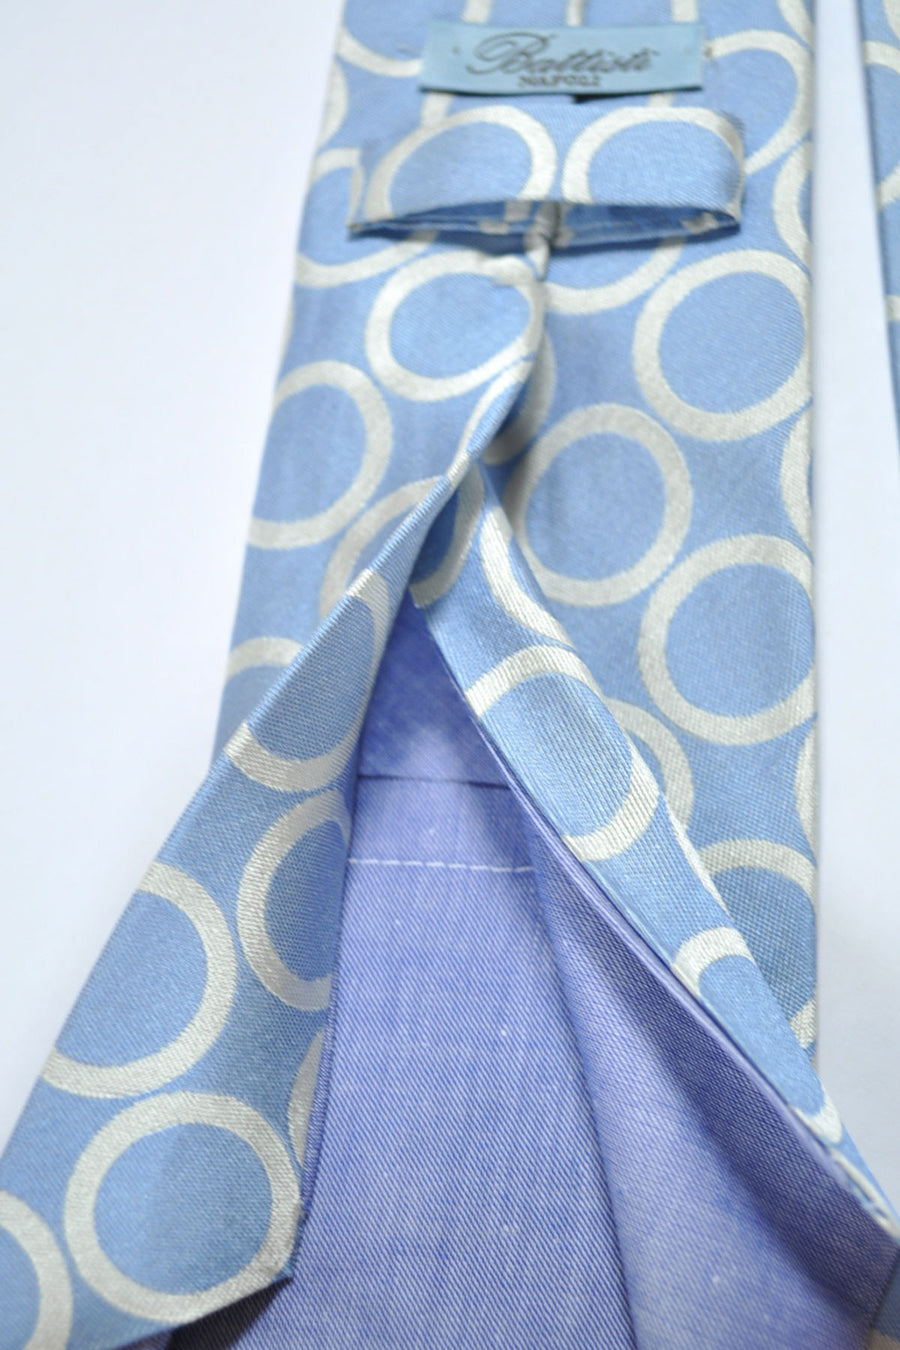 Battisti Tie Blue Gray Silver Circles - Hidden Pocket Edition